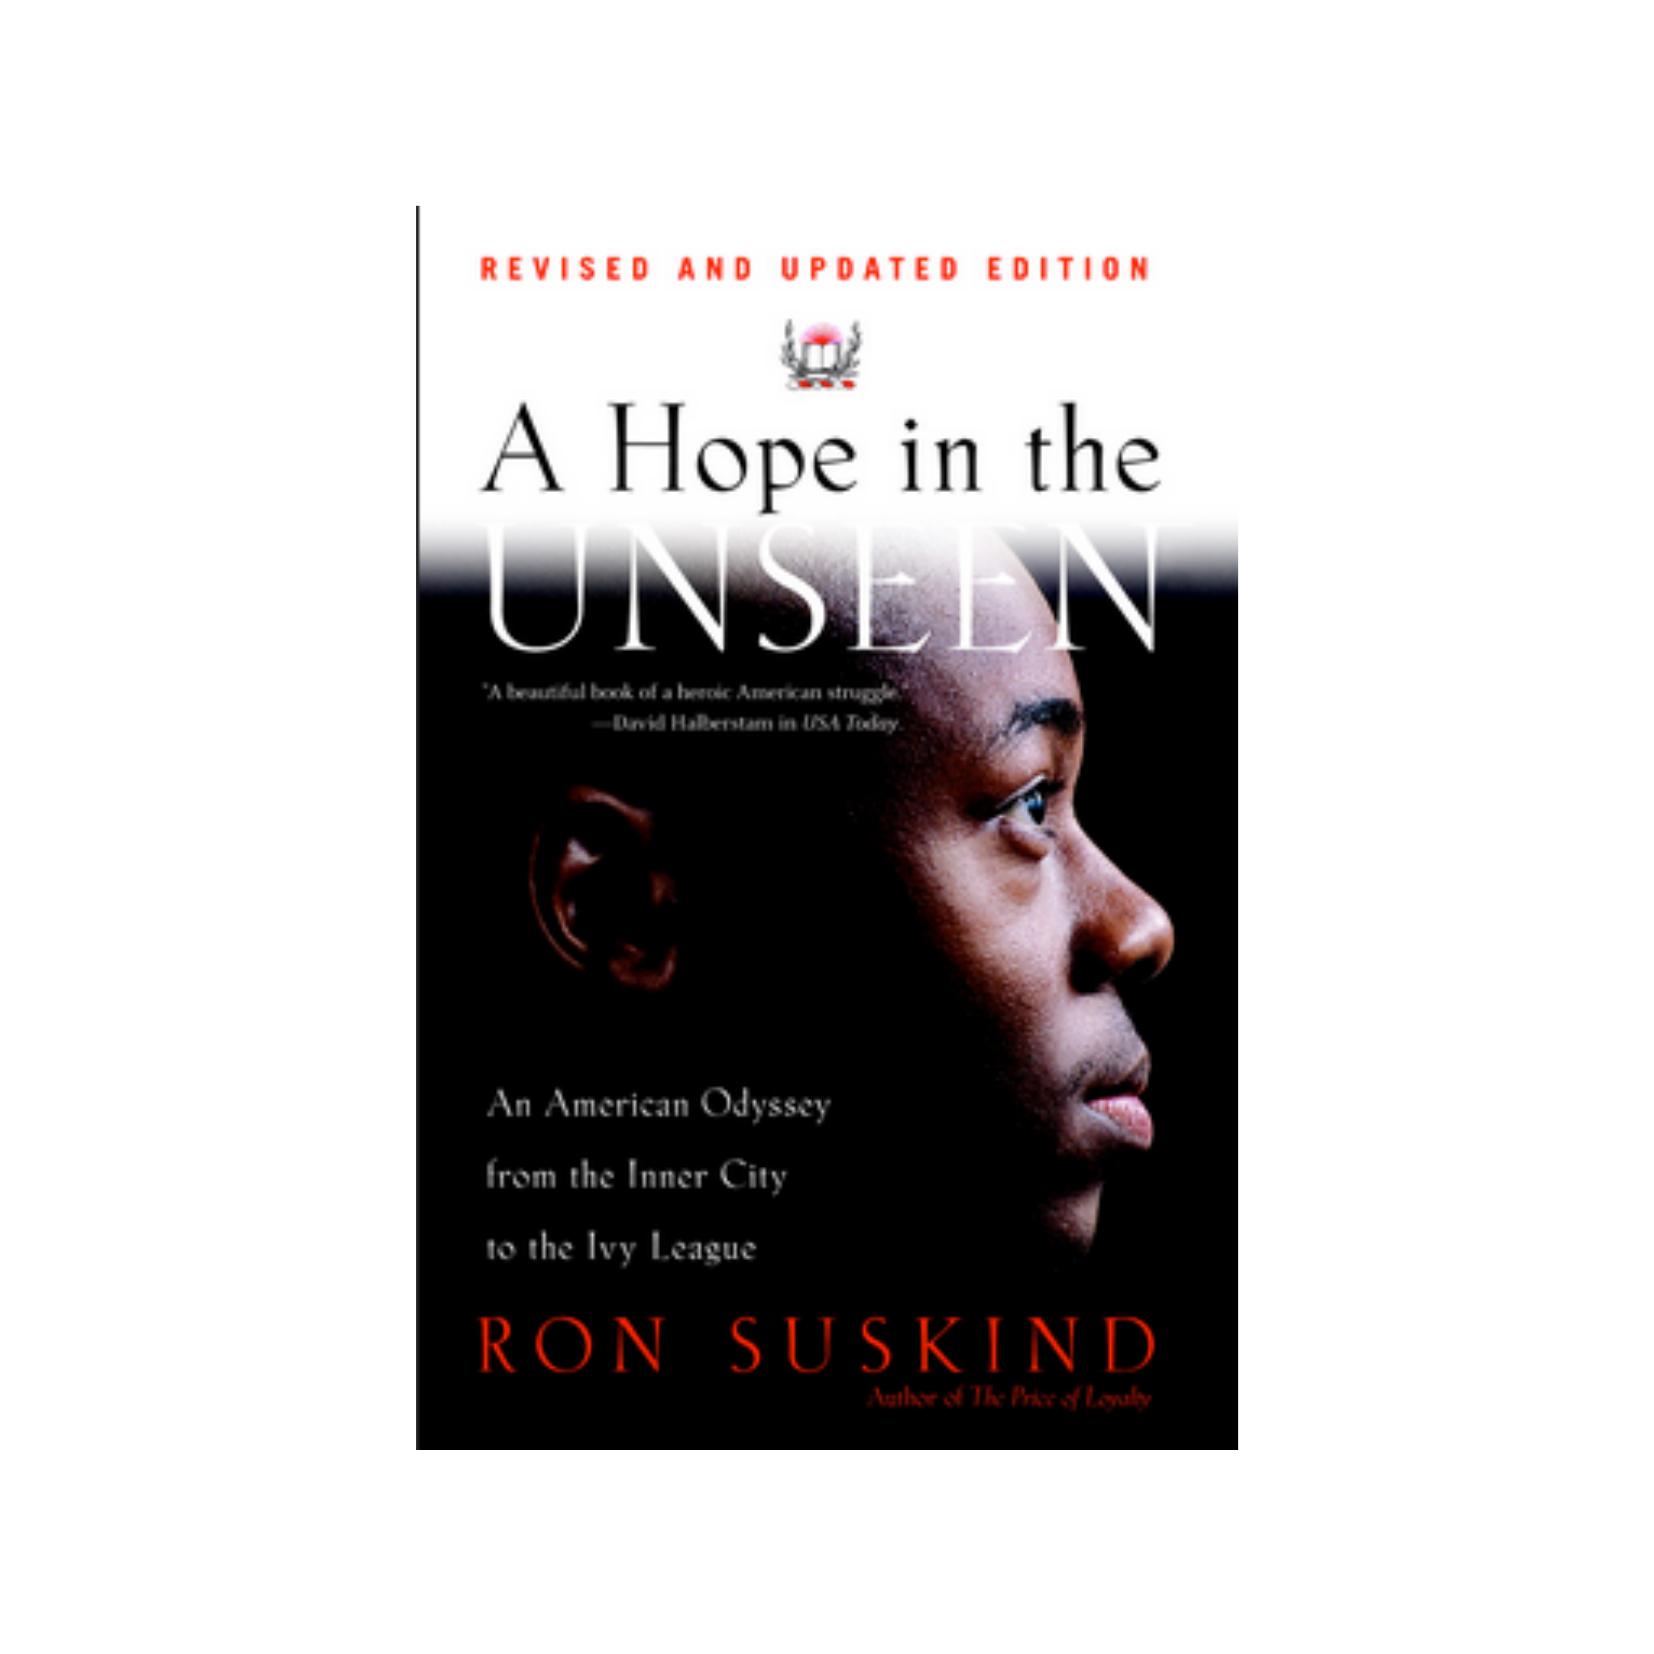 A Hope in the Unseen